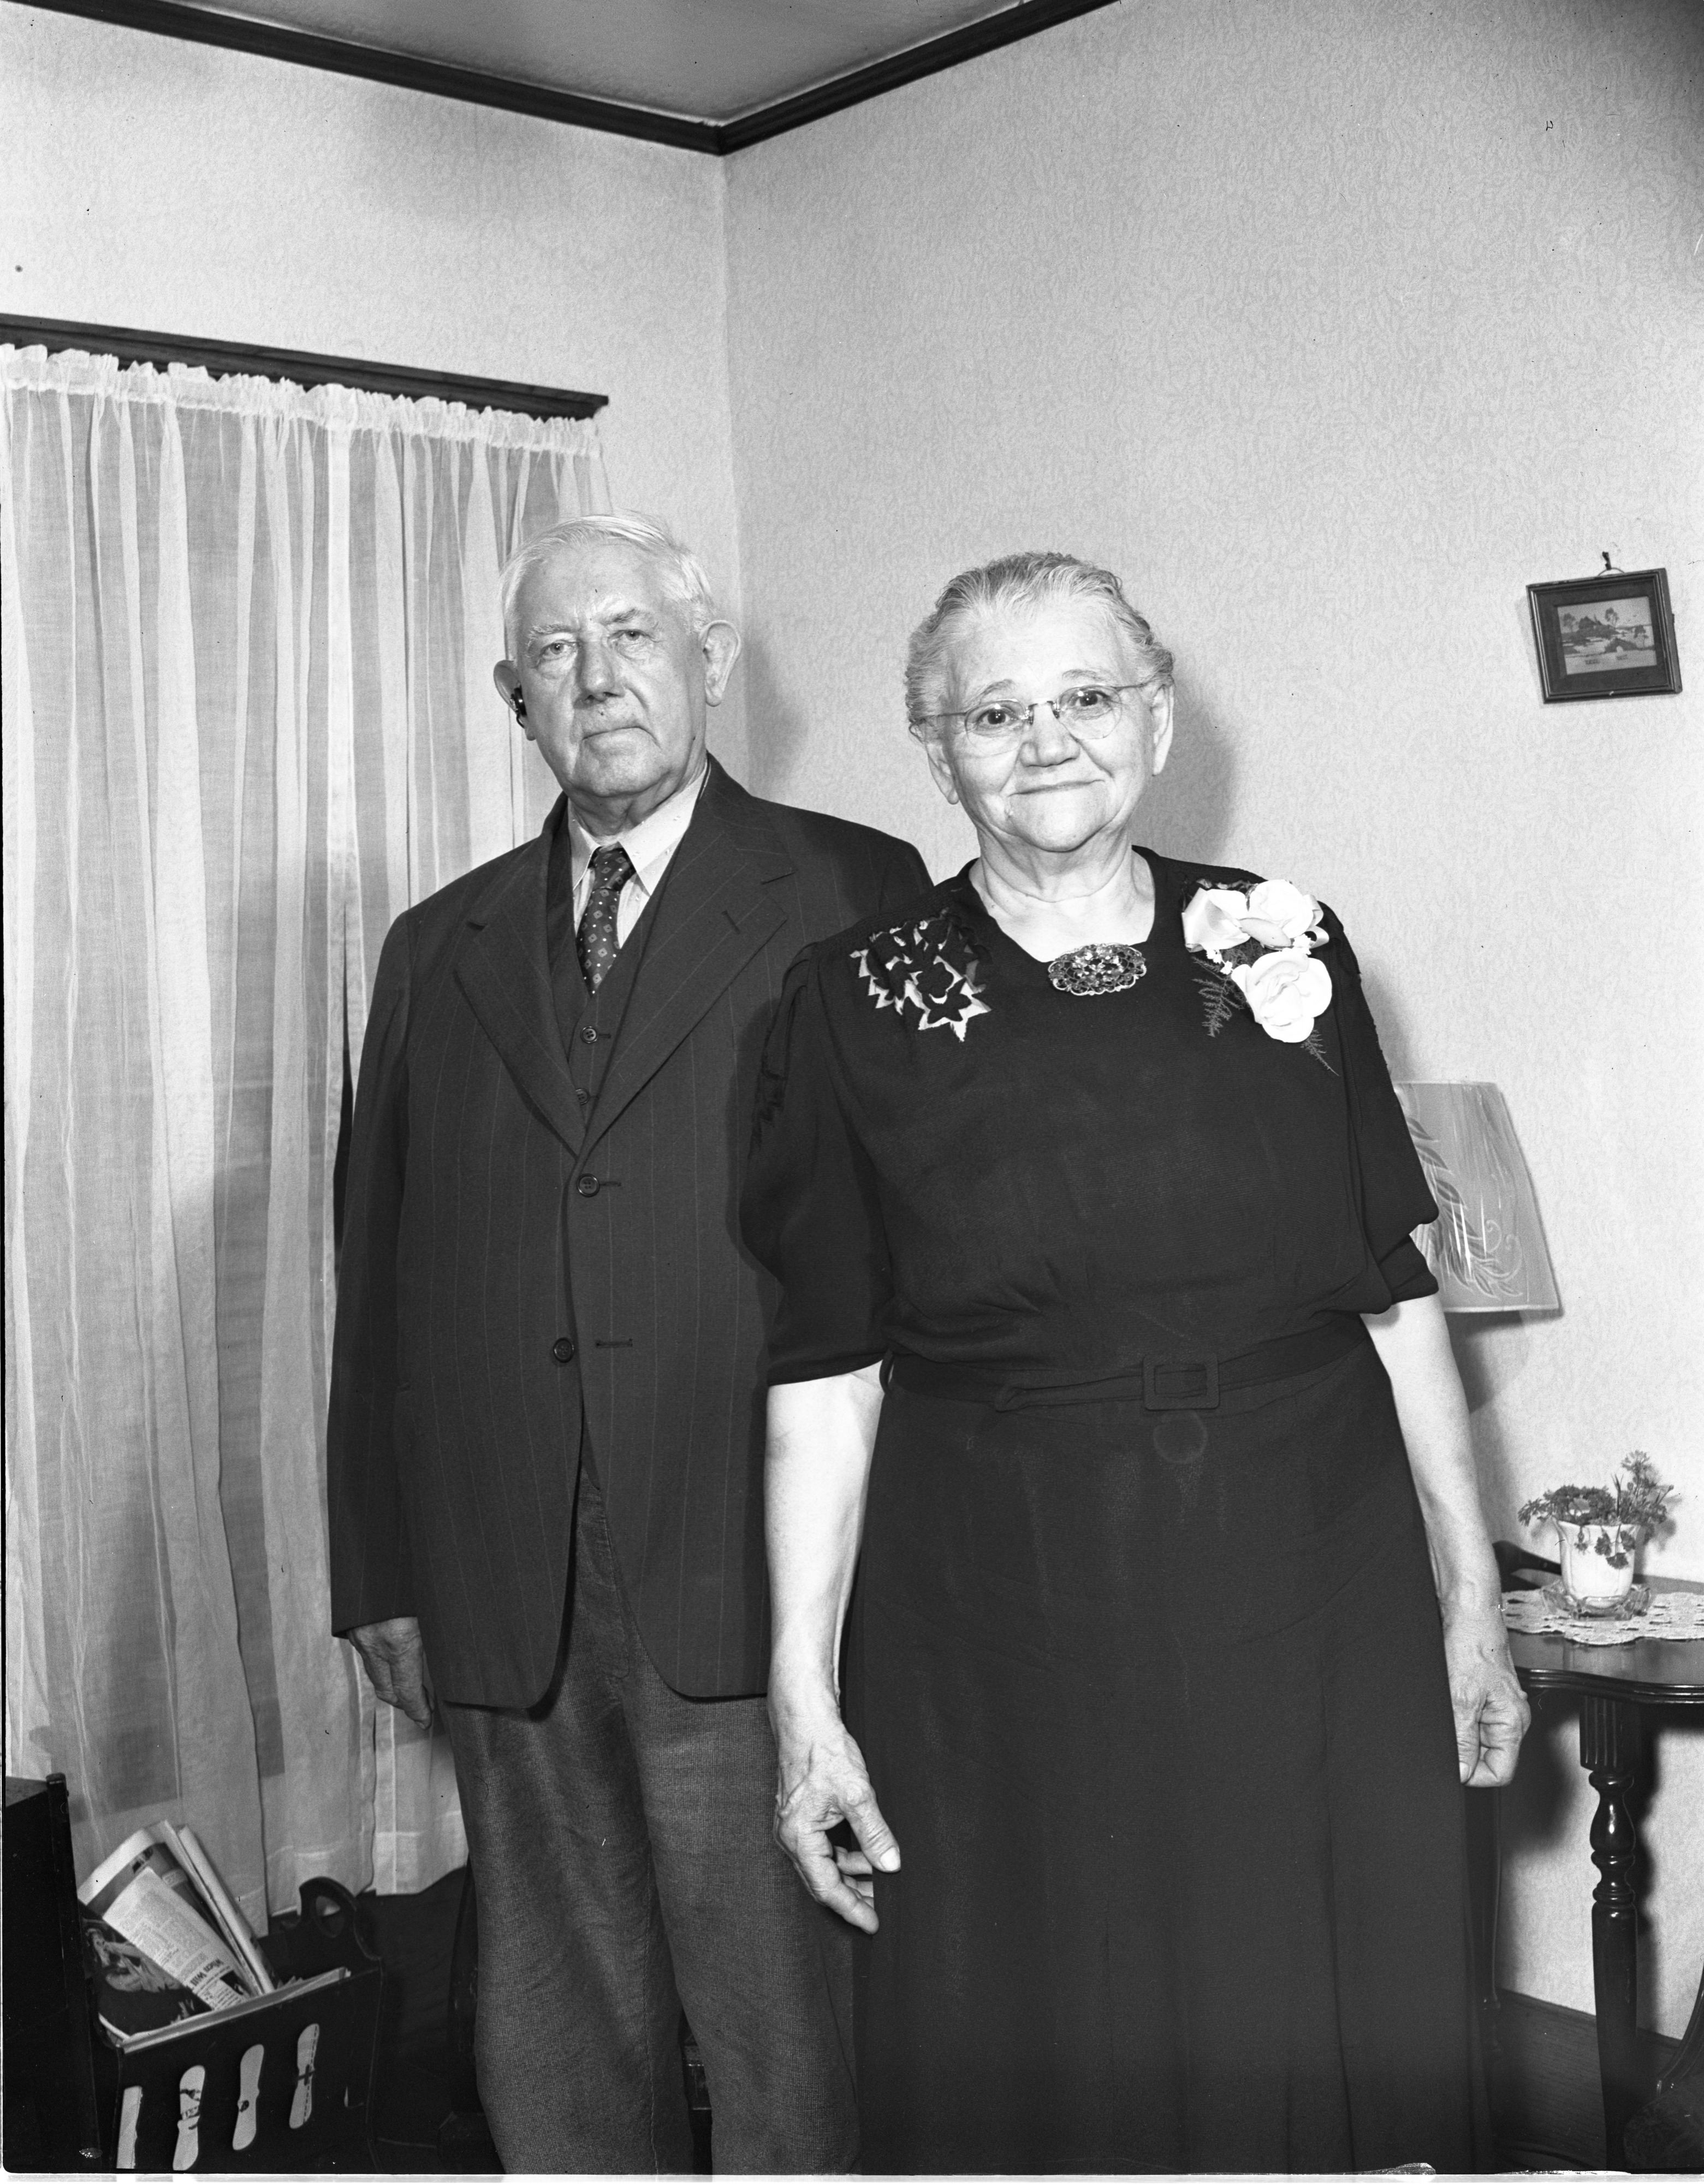 Herman & Catherine Busch - Married 50 Years, June 1944 image